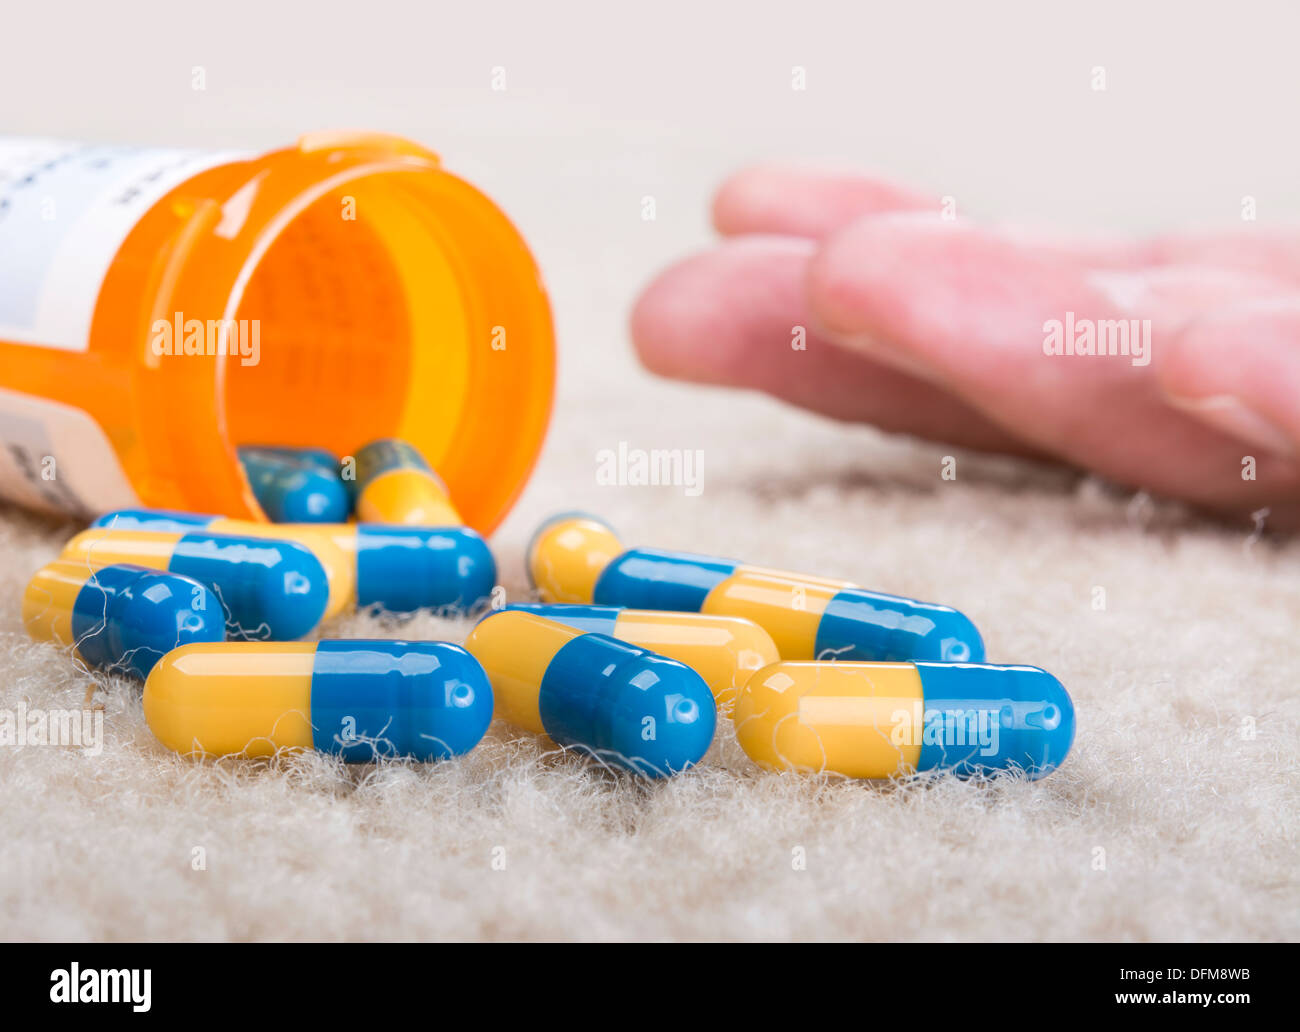 A person overdoses on prescription medication and lies unconscious on the floor - Stock Image